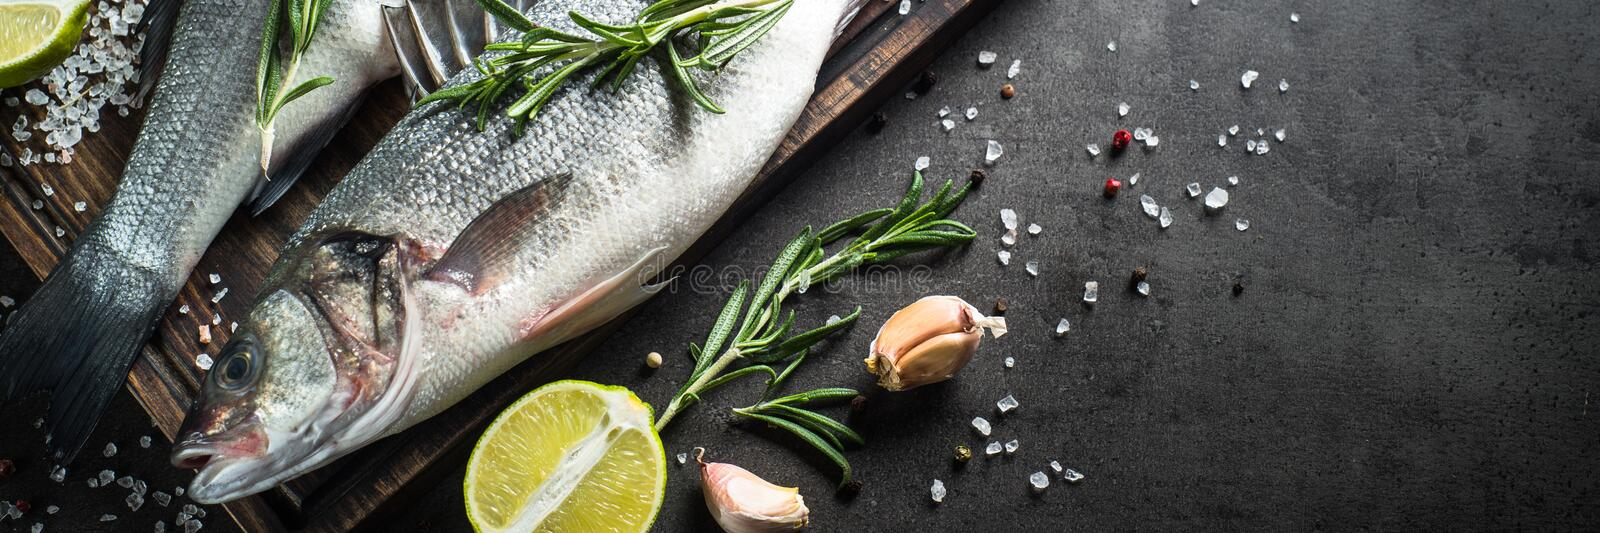 Fresh fish seabass on black. Fresh fish seabass and ingredients for cooking. Raw fish seabass with spices and herbs on black slate table. Long banner format royalty free stock image